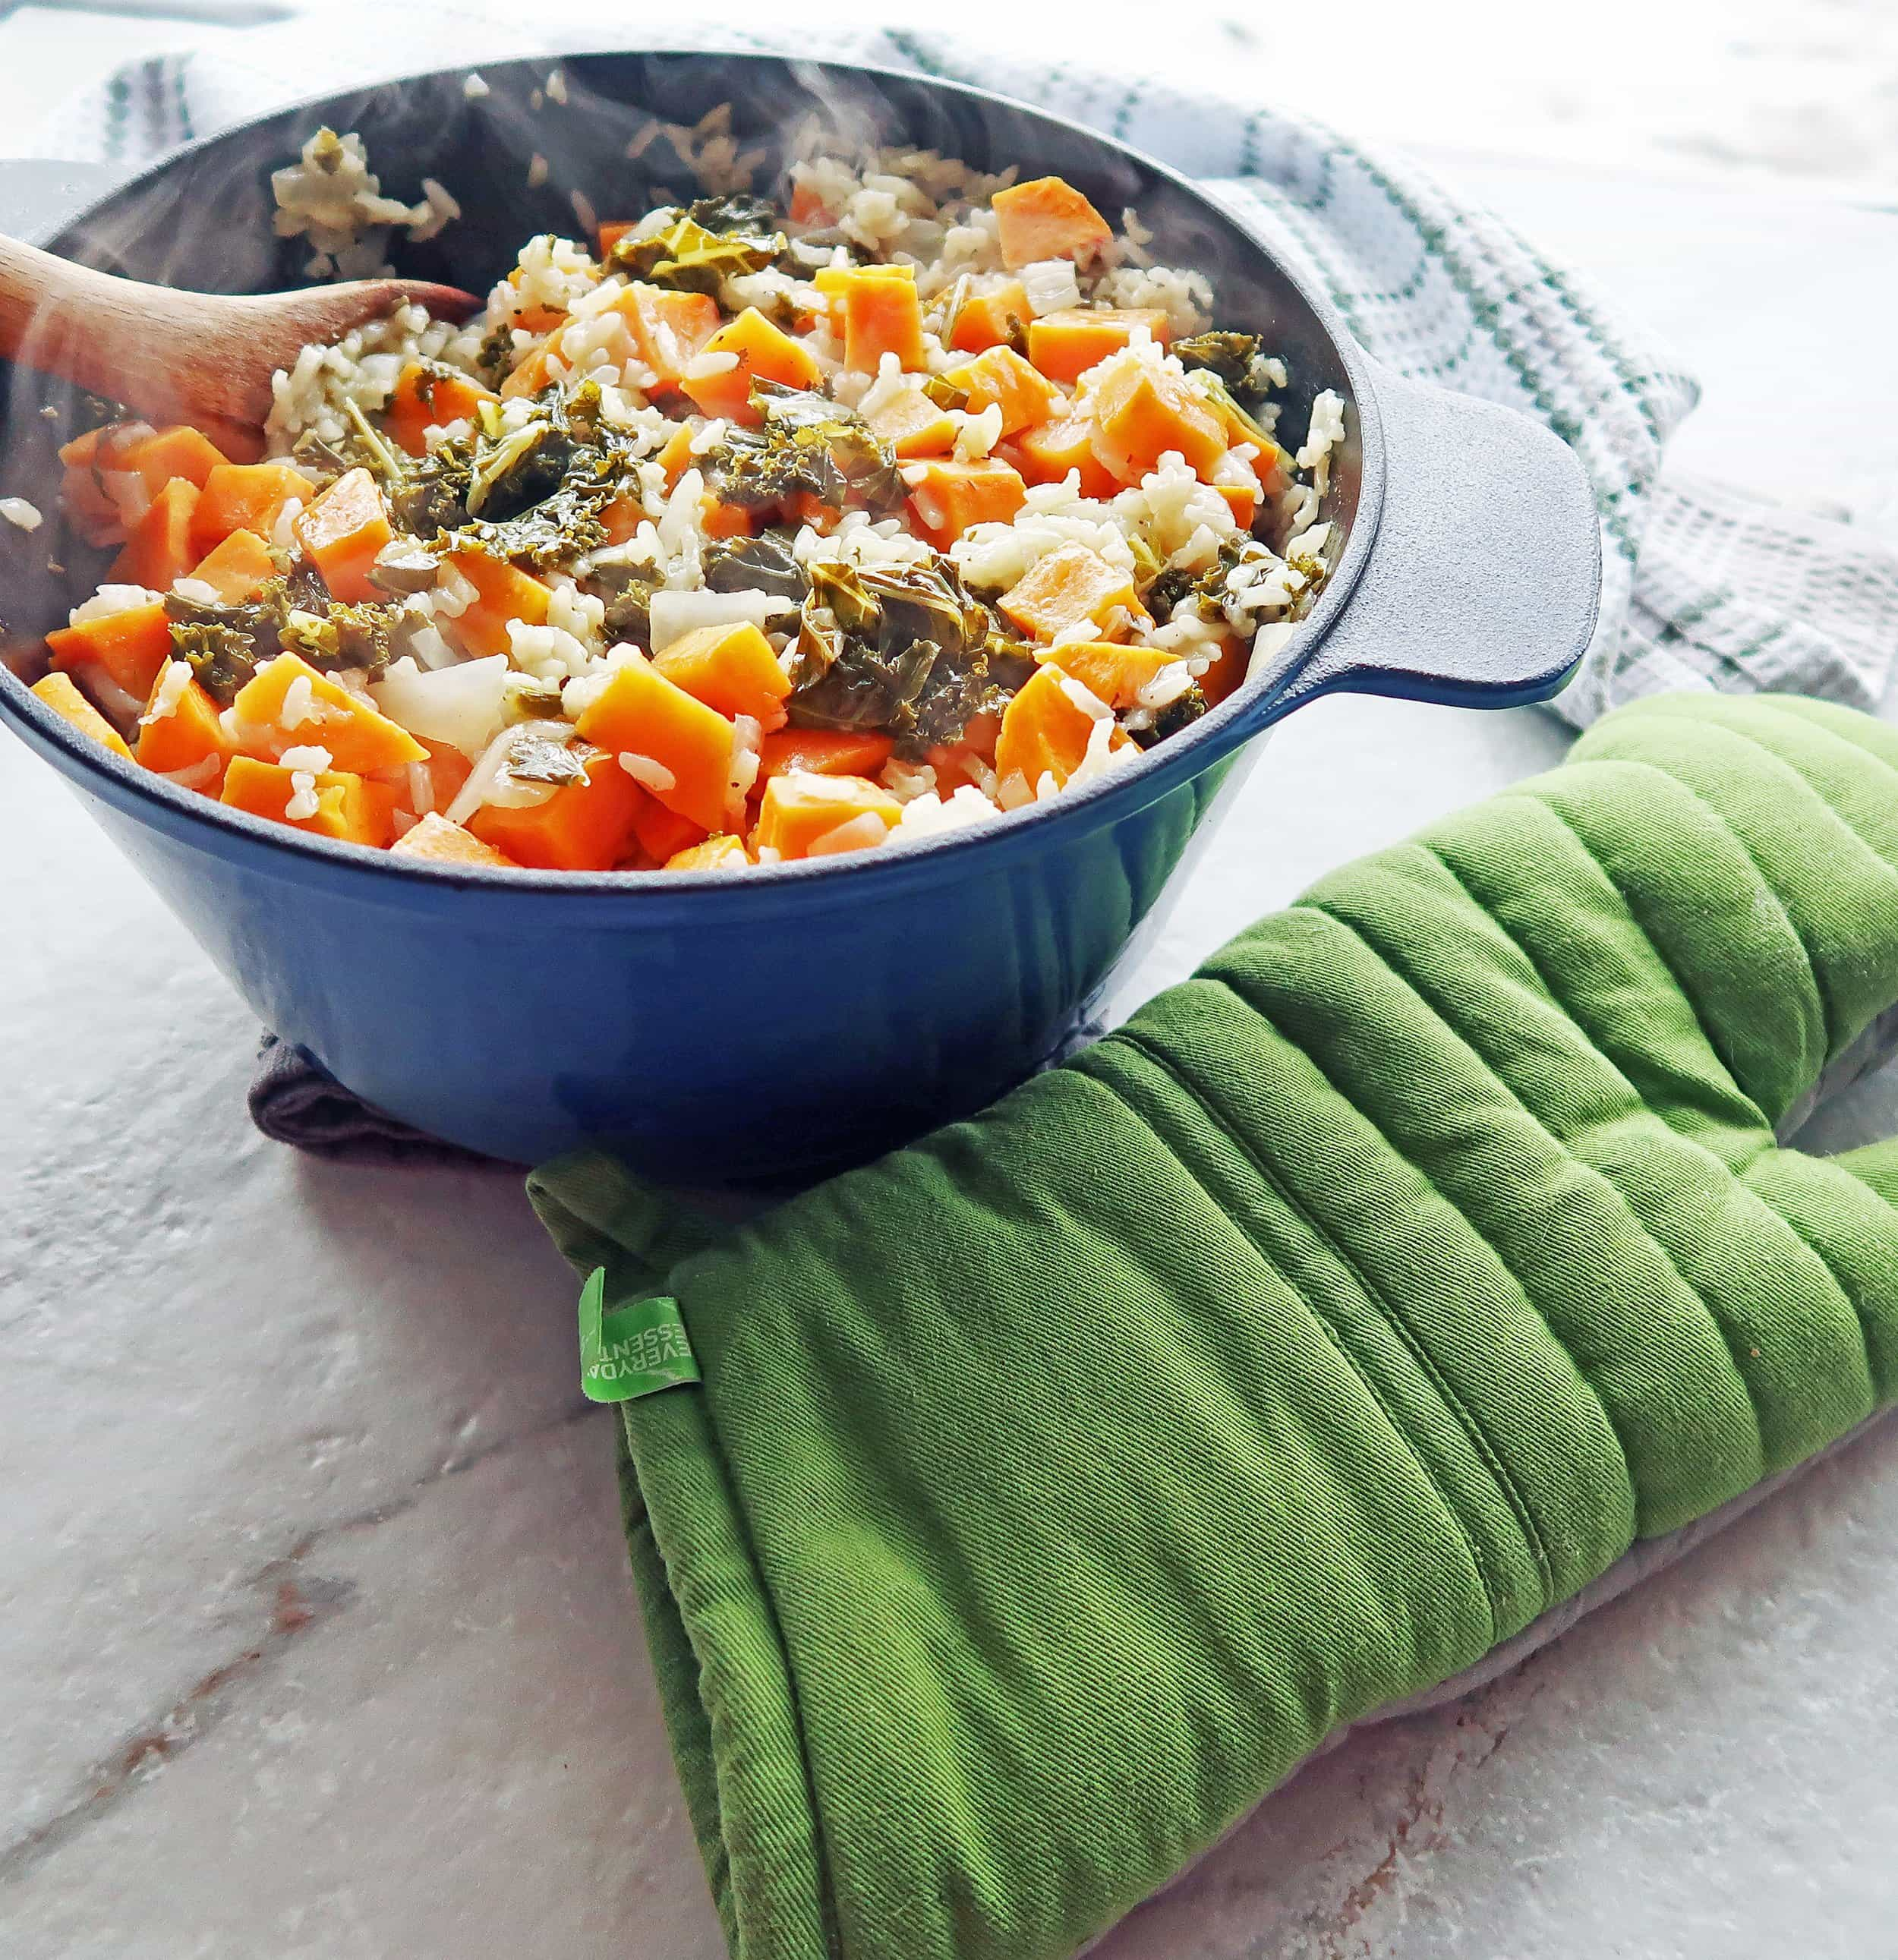 A Dutch oven full of vegetarian, gluten-free sweet potato and kale risotto with green oven mitt to its side.